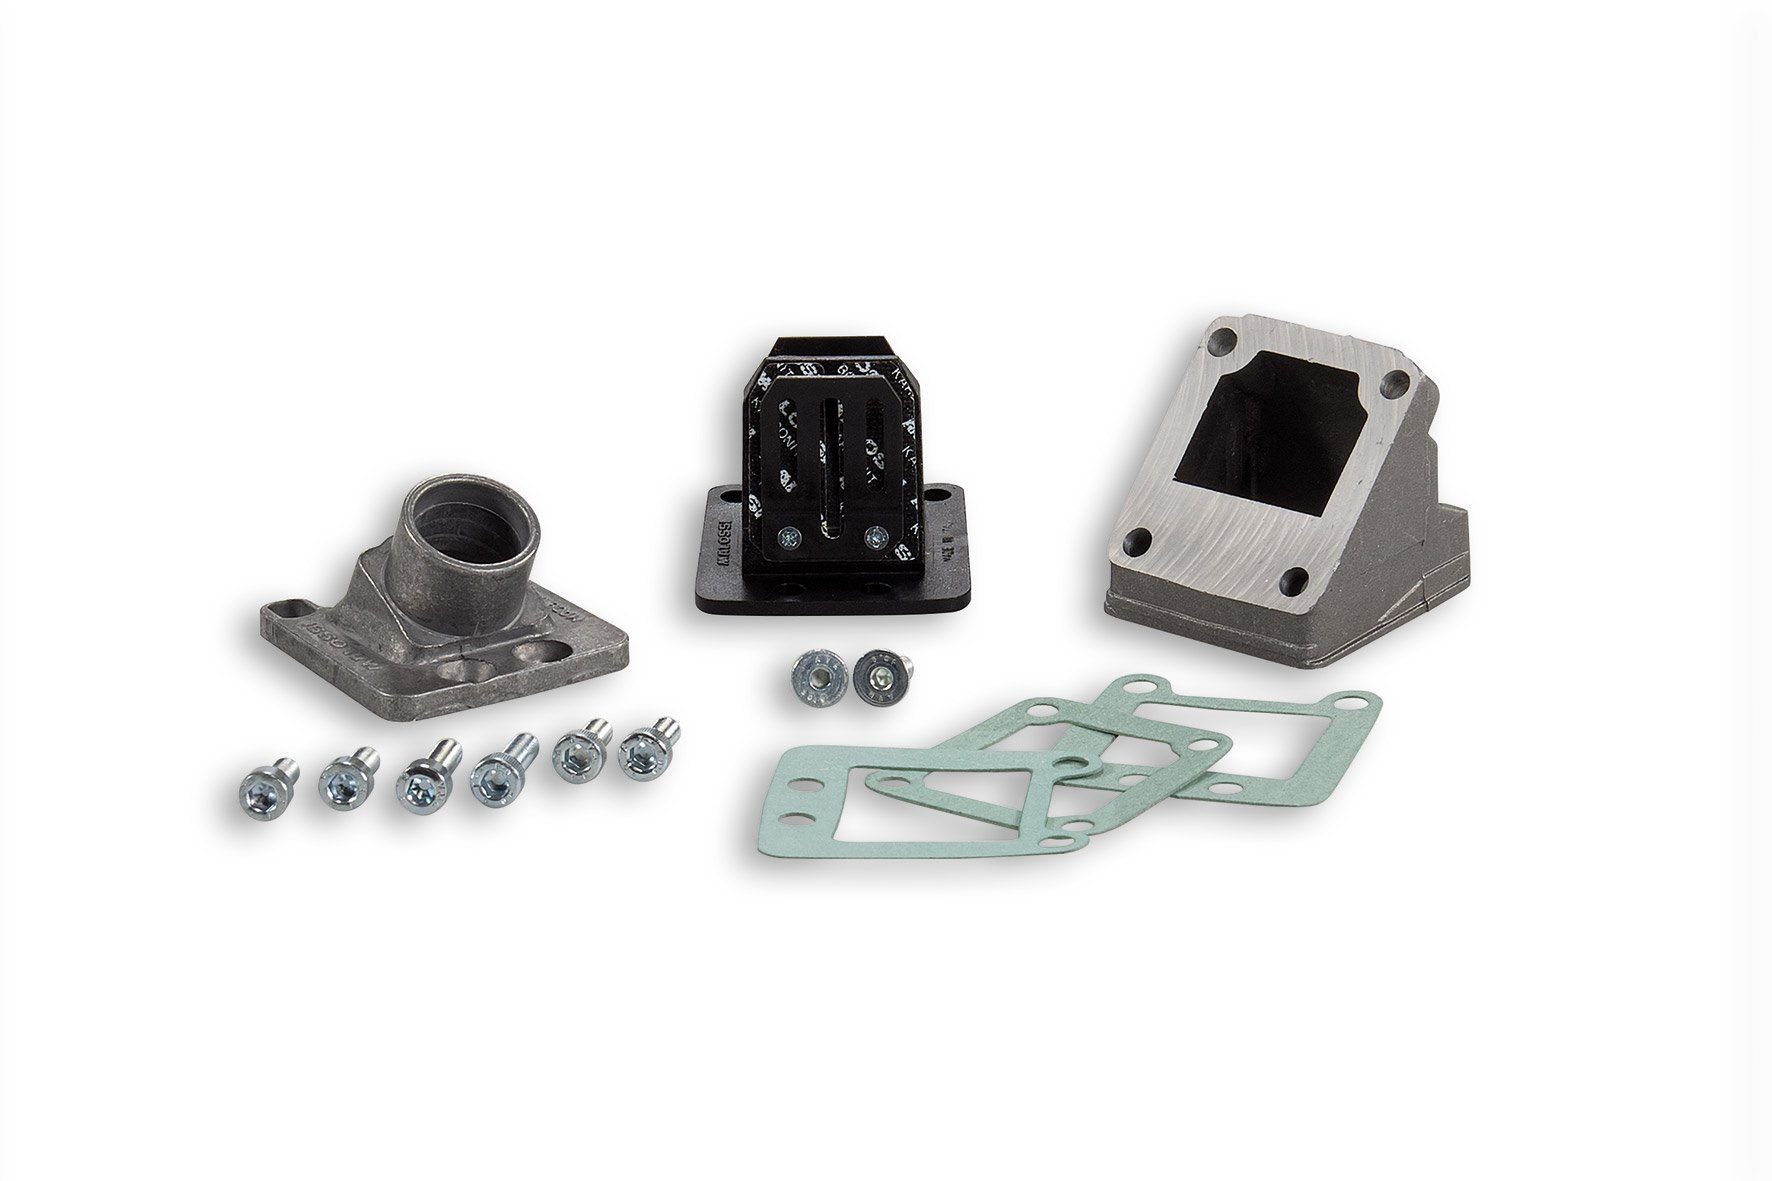 INTAKE MANIFOLD KIT for Ø 21 OVERSIZE REED VALVE PEUG.103